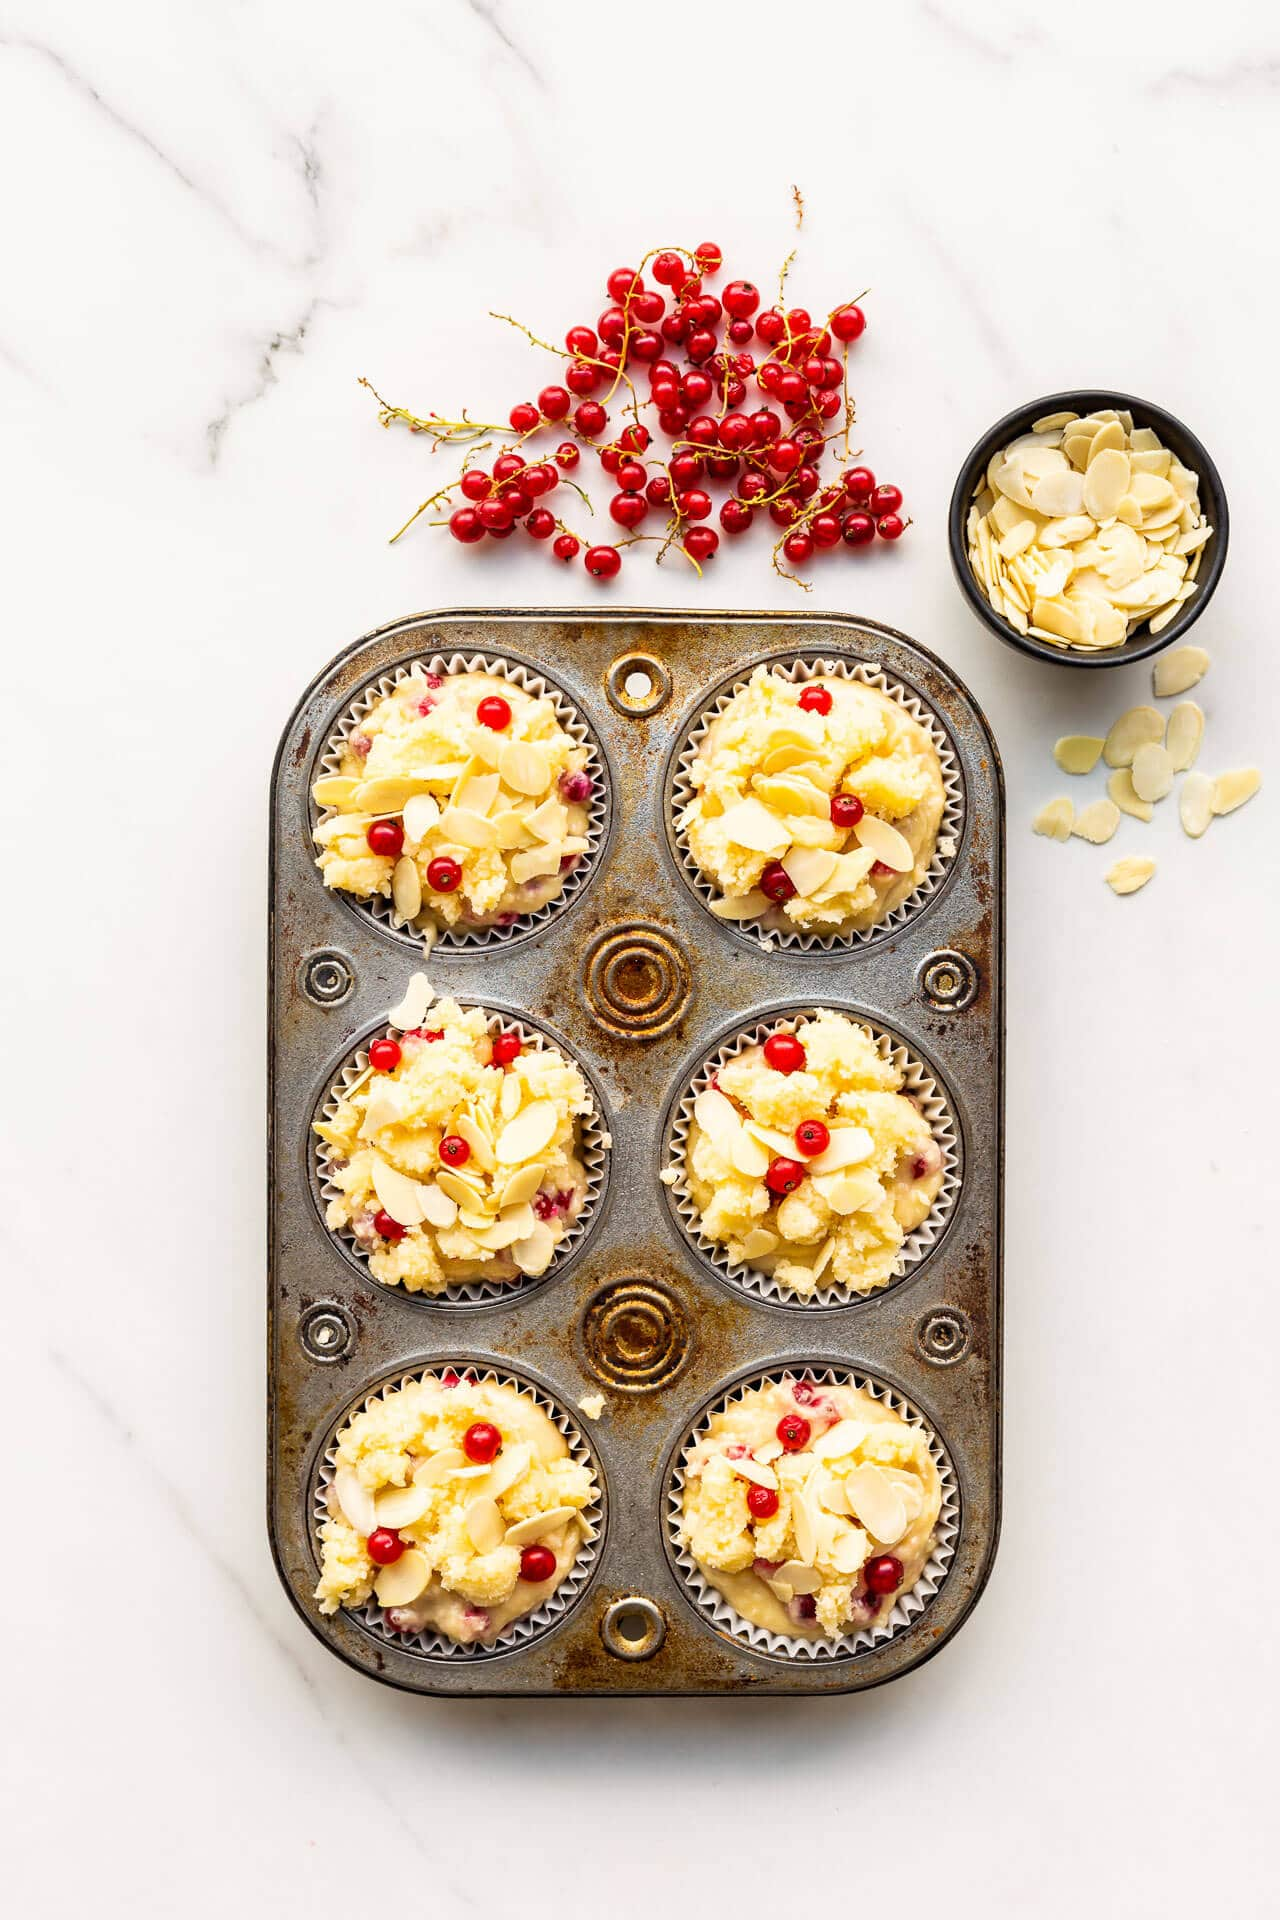 Making red currant muffins with a sugary crumble topping and sliced almonds on top